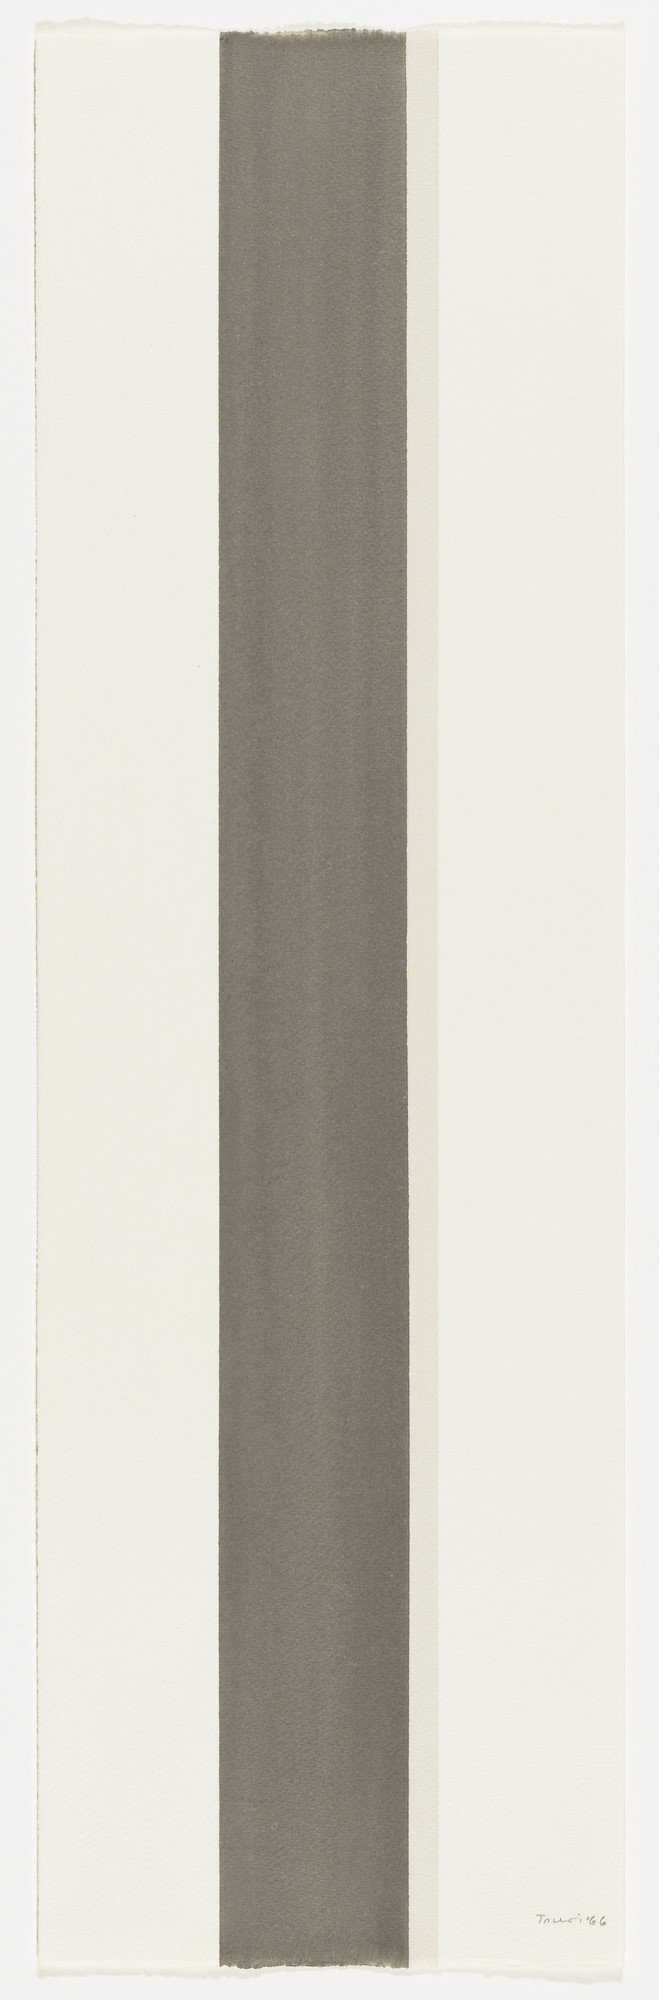 Anne Truitt. Sumi Drawing. 1966